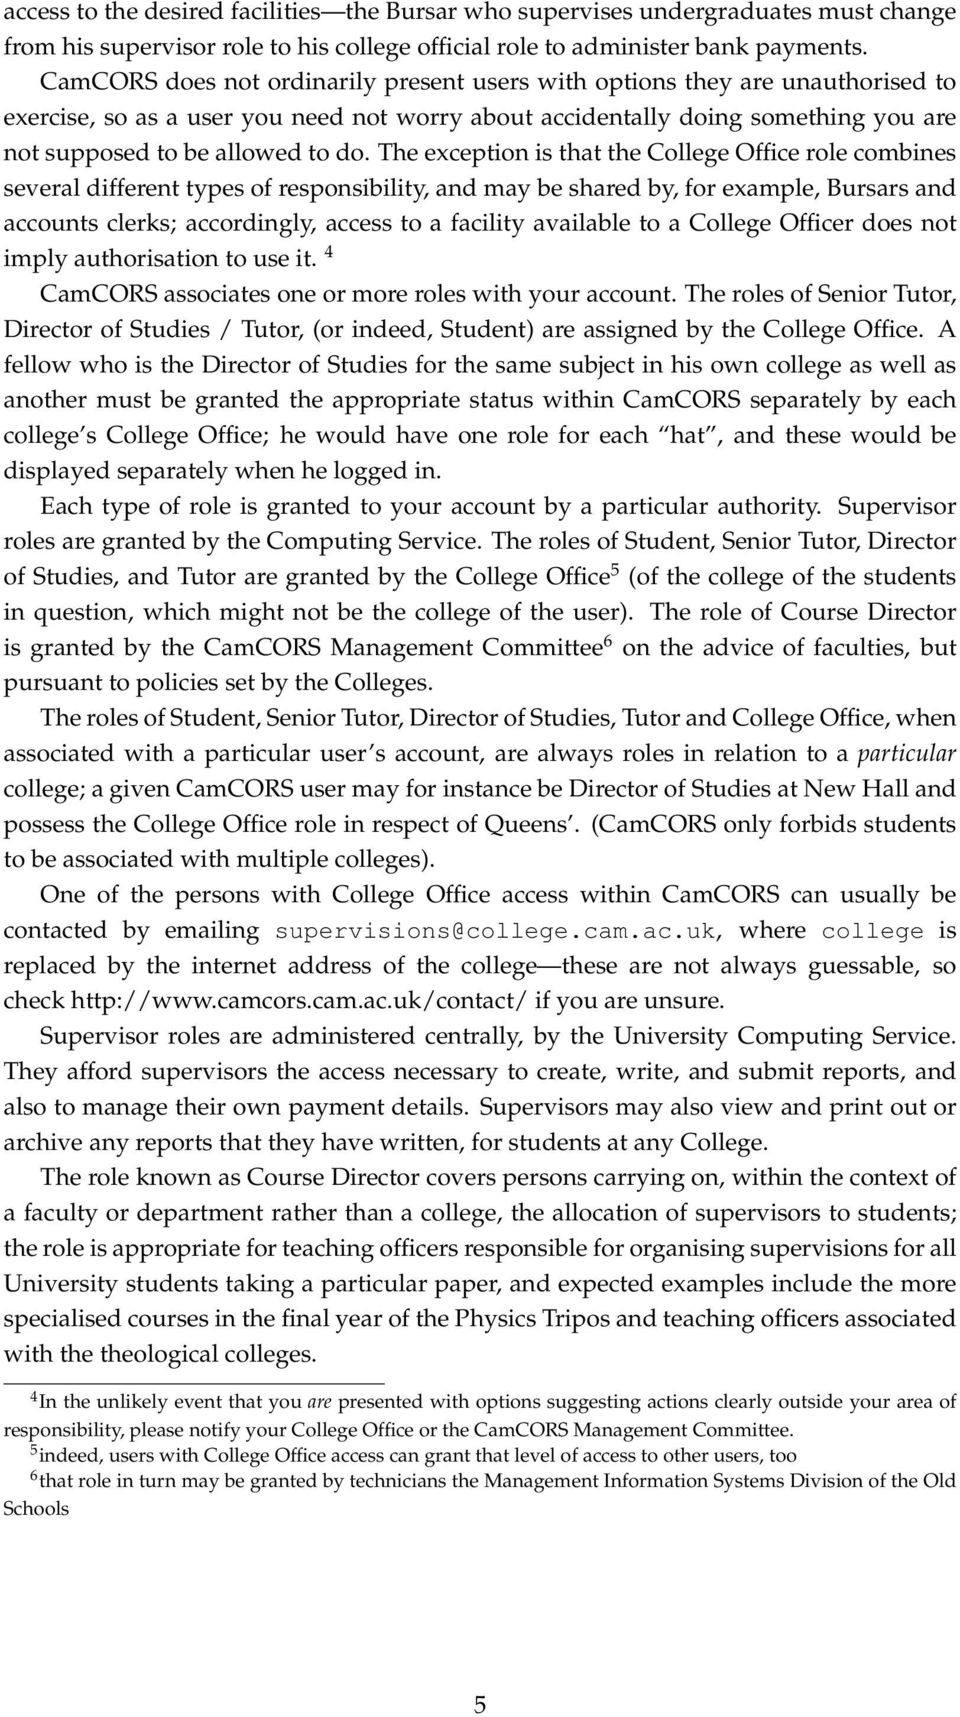 The exception is that the College Office role combines several different types of responsibility, and may be shared by, for example, Bursars and accounts clerks; accordingly, access to a facility